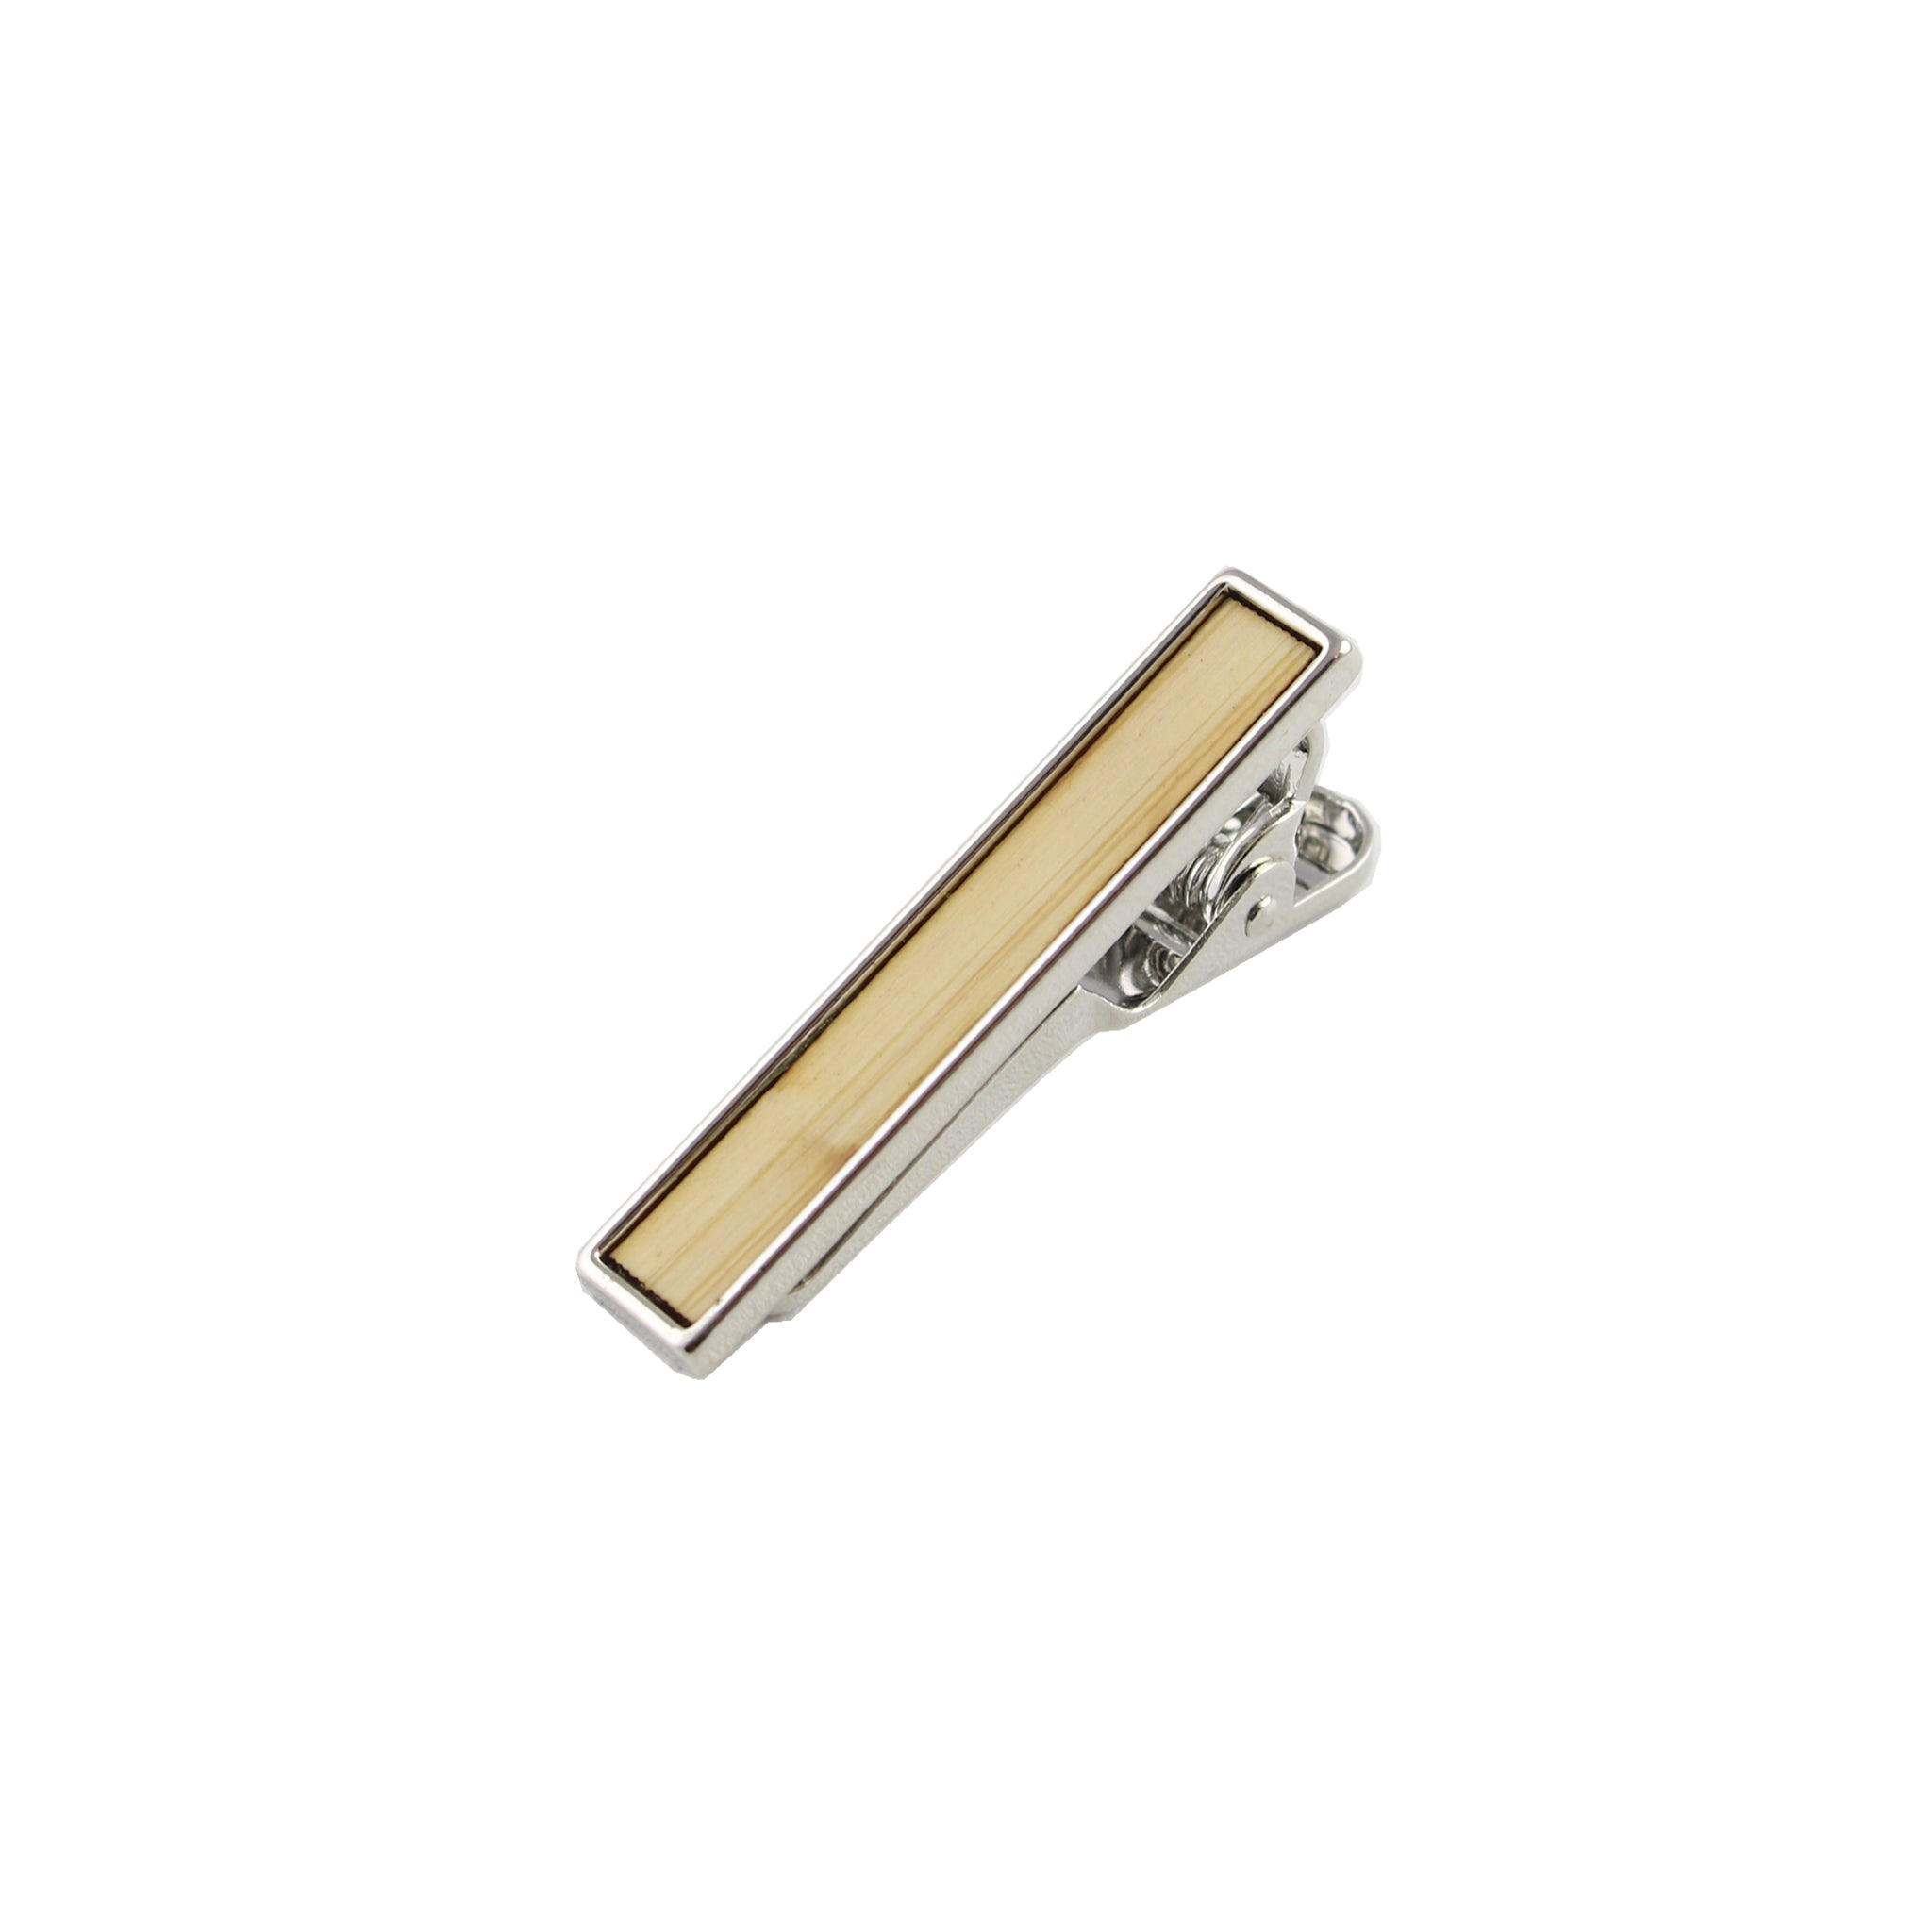 Bamboo Wooden Inlay-Silver Tie Bar from DIBI